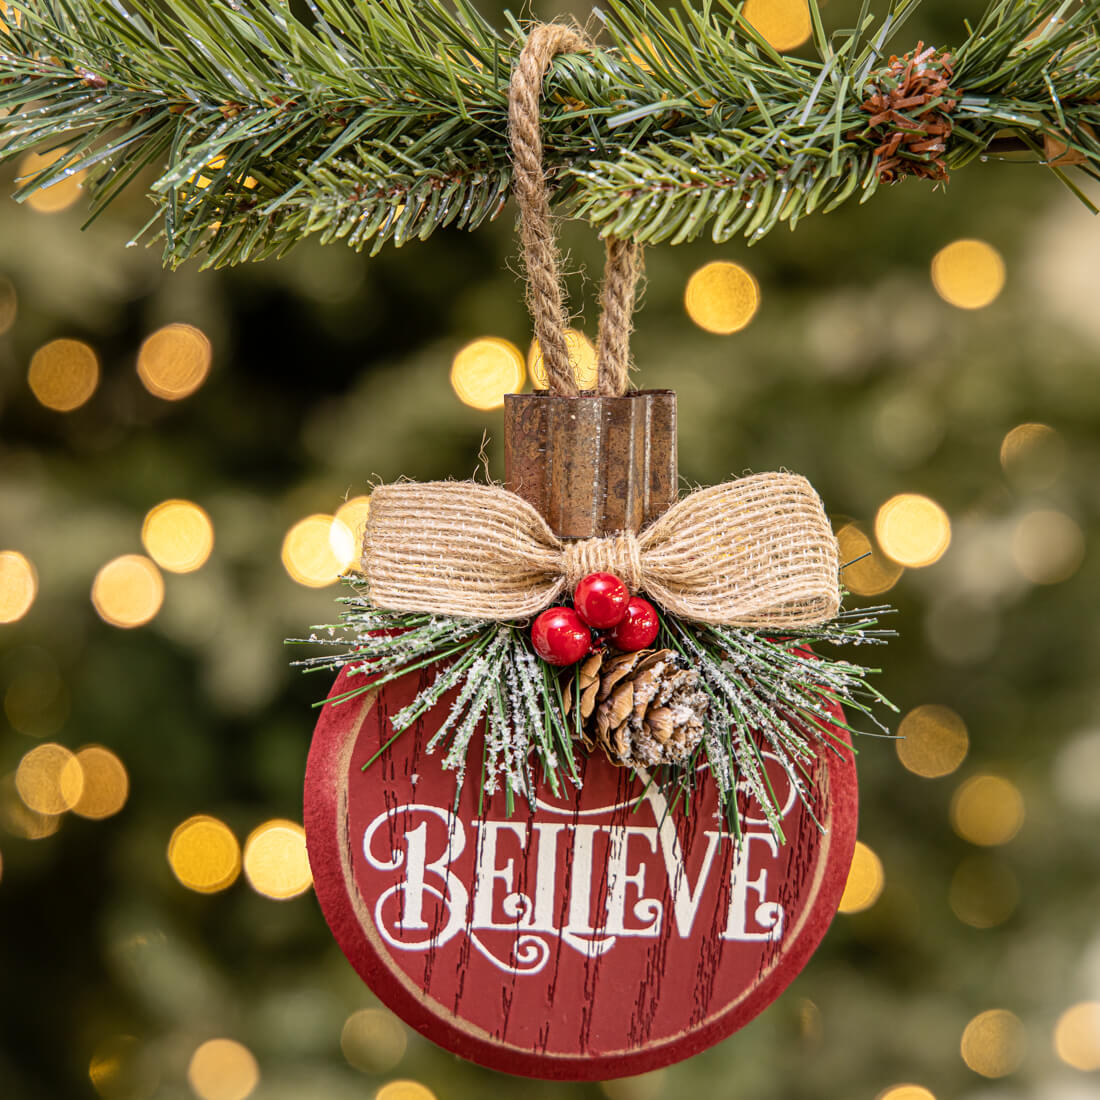 Traditional Christmas Decor and Ornaments